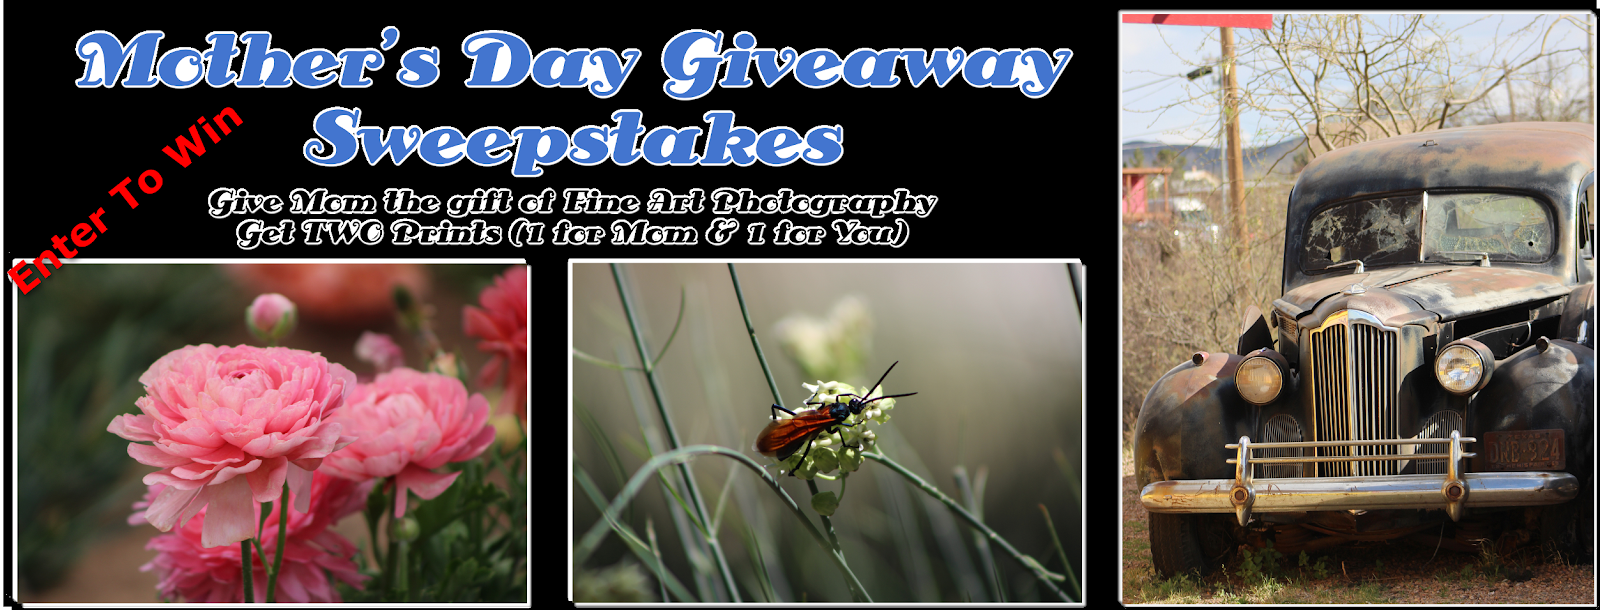 Mother's Day Giveaway - 2 Free FineArt Prints